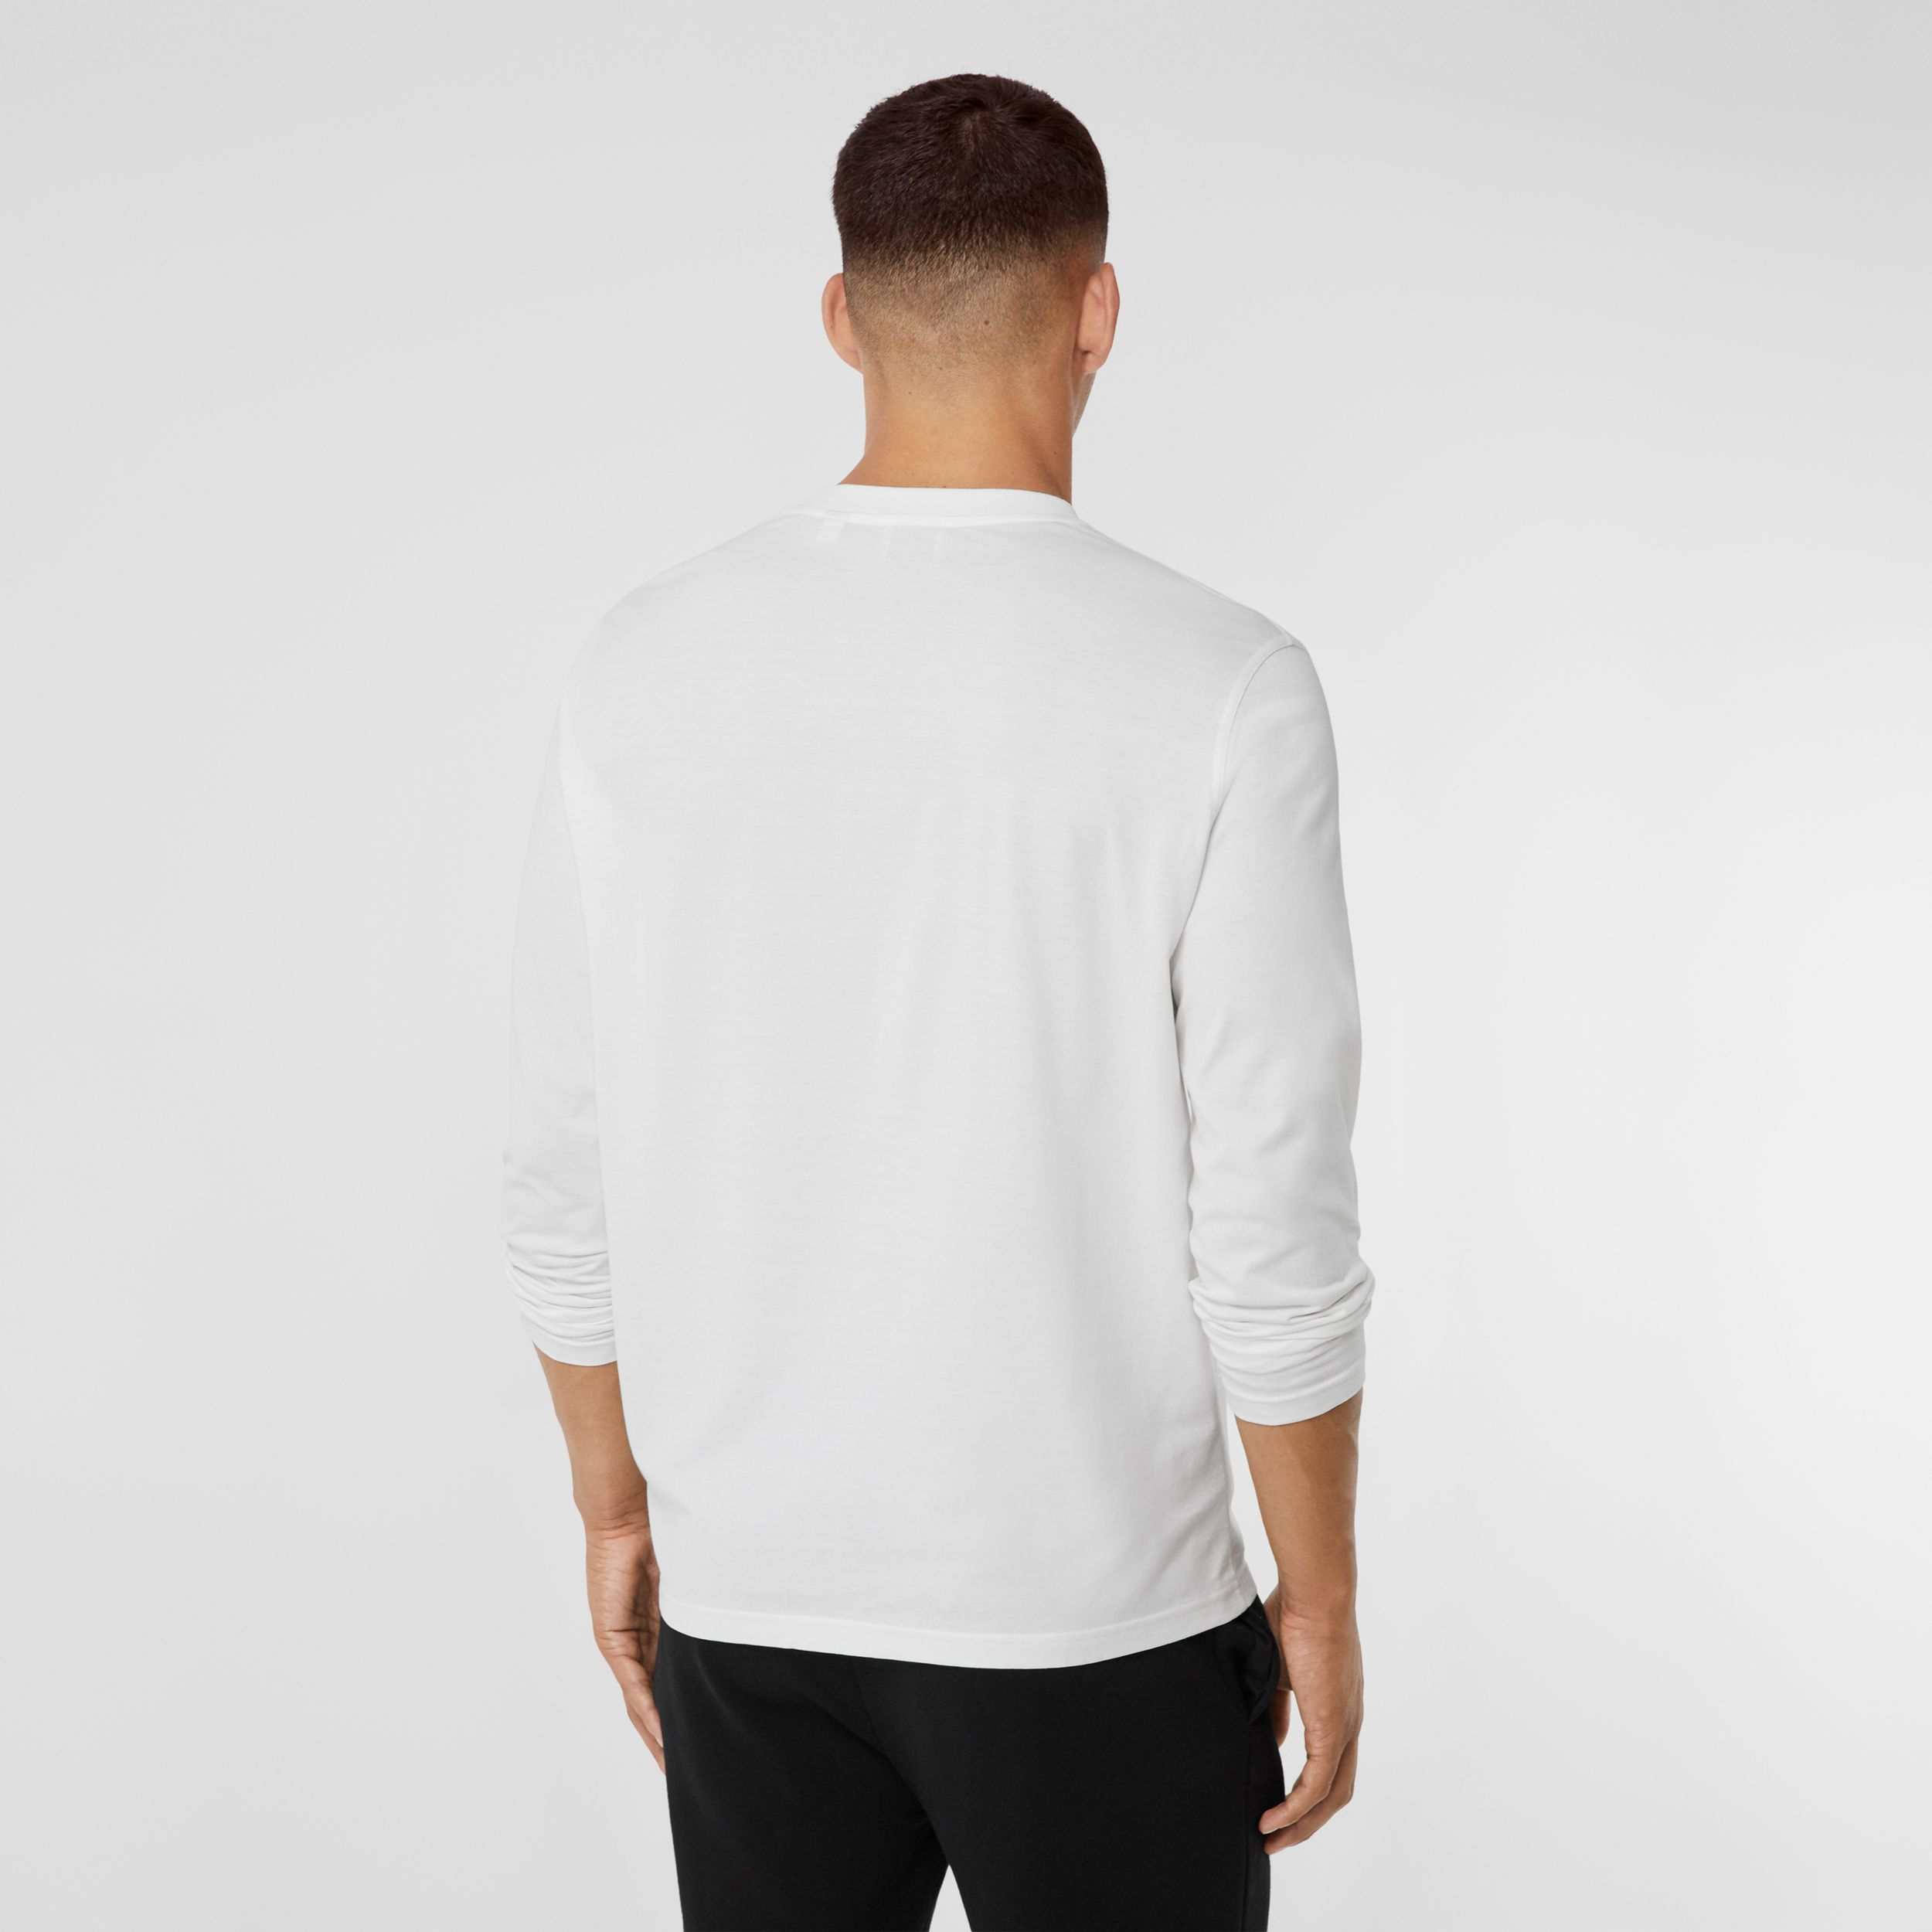 Long-sleeve Monogram Motif Cotton Top in White - Men | Burberry - 3